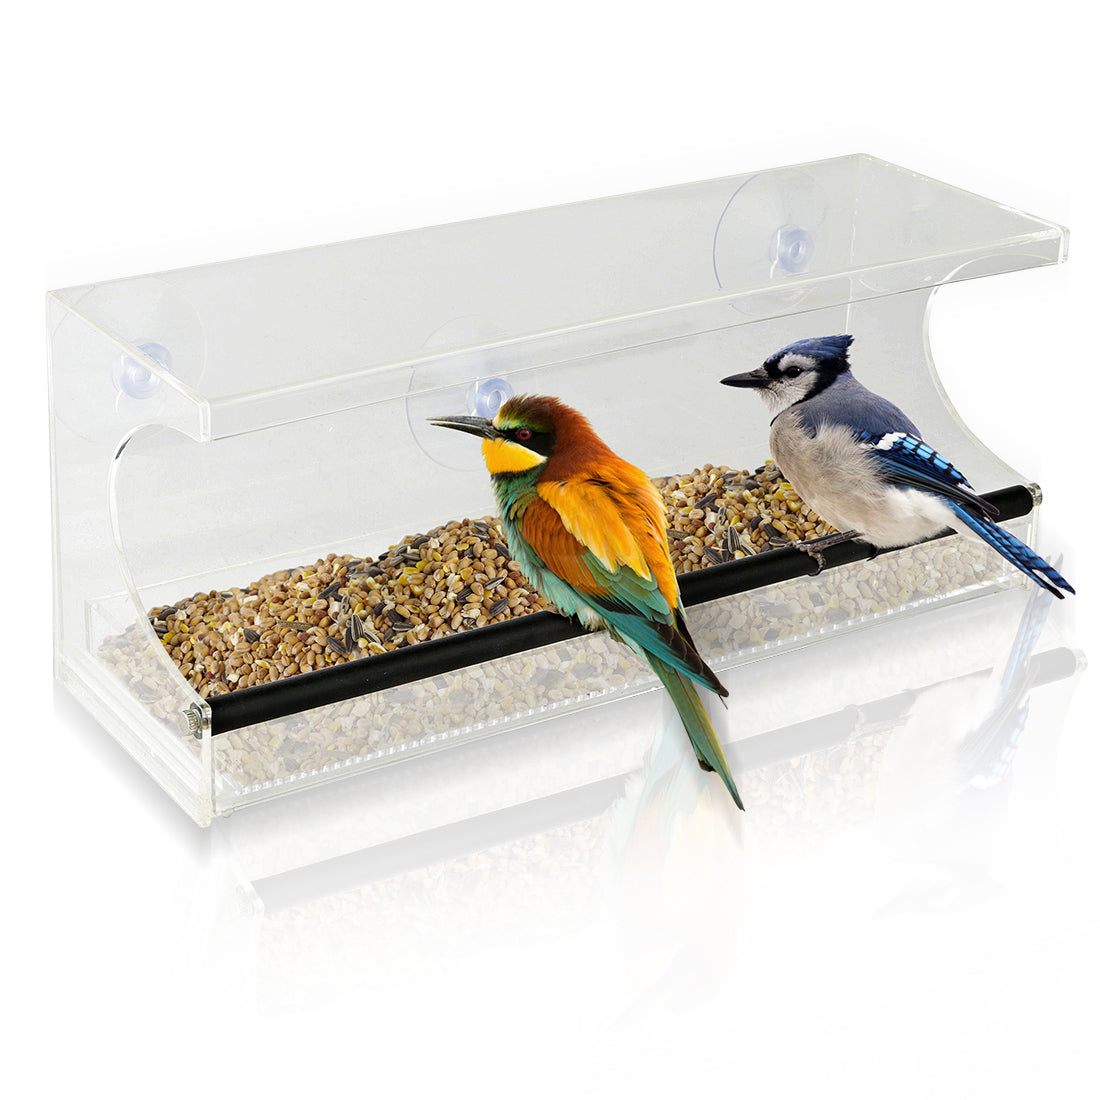 Window Bird Feeder - See-Through Acrylic - Clear, Removable Slide Out Tray - Drainage Holes Keep Bird Seed Fresh - 3 Suction Cups For Easy Mounting - Perfect for Adults, Kids, Pets, Home Bird Watching